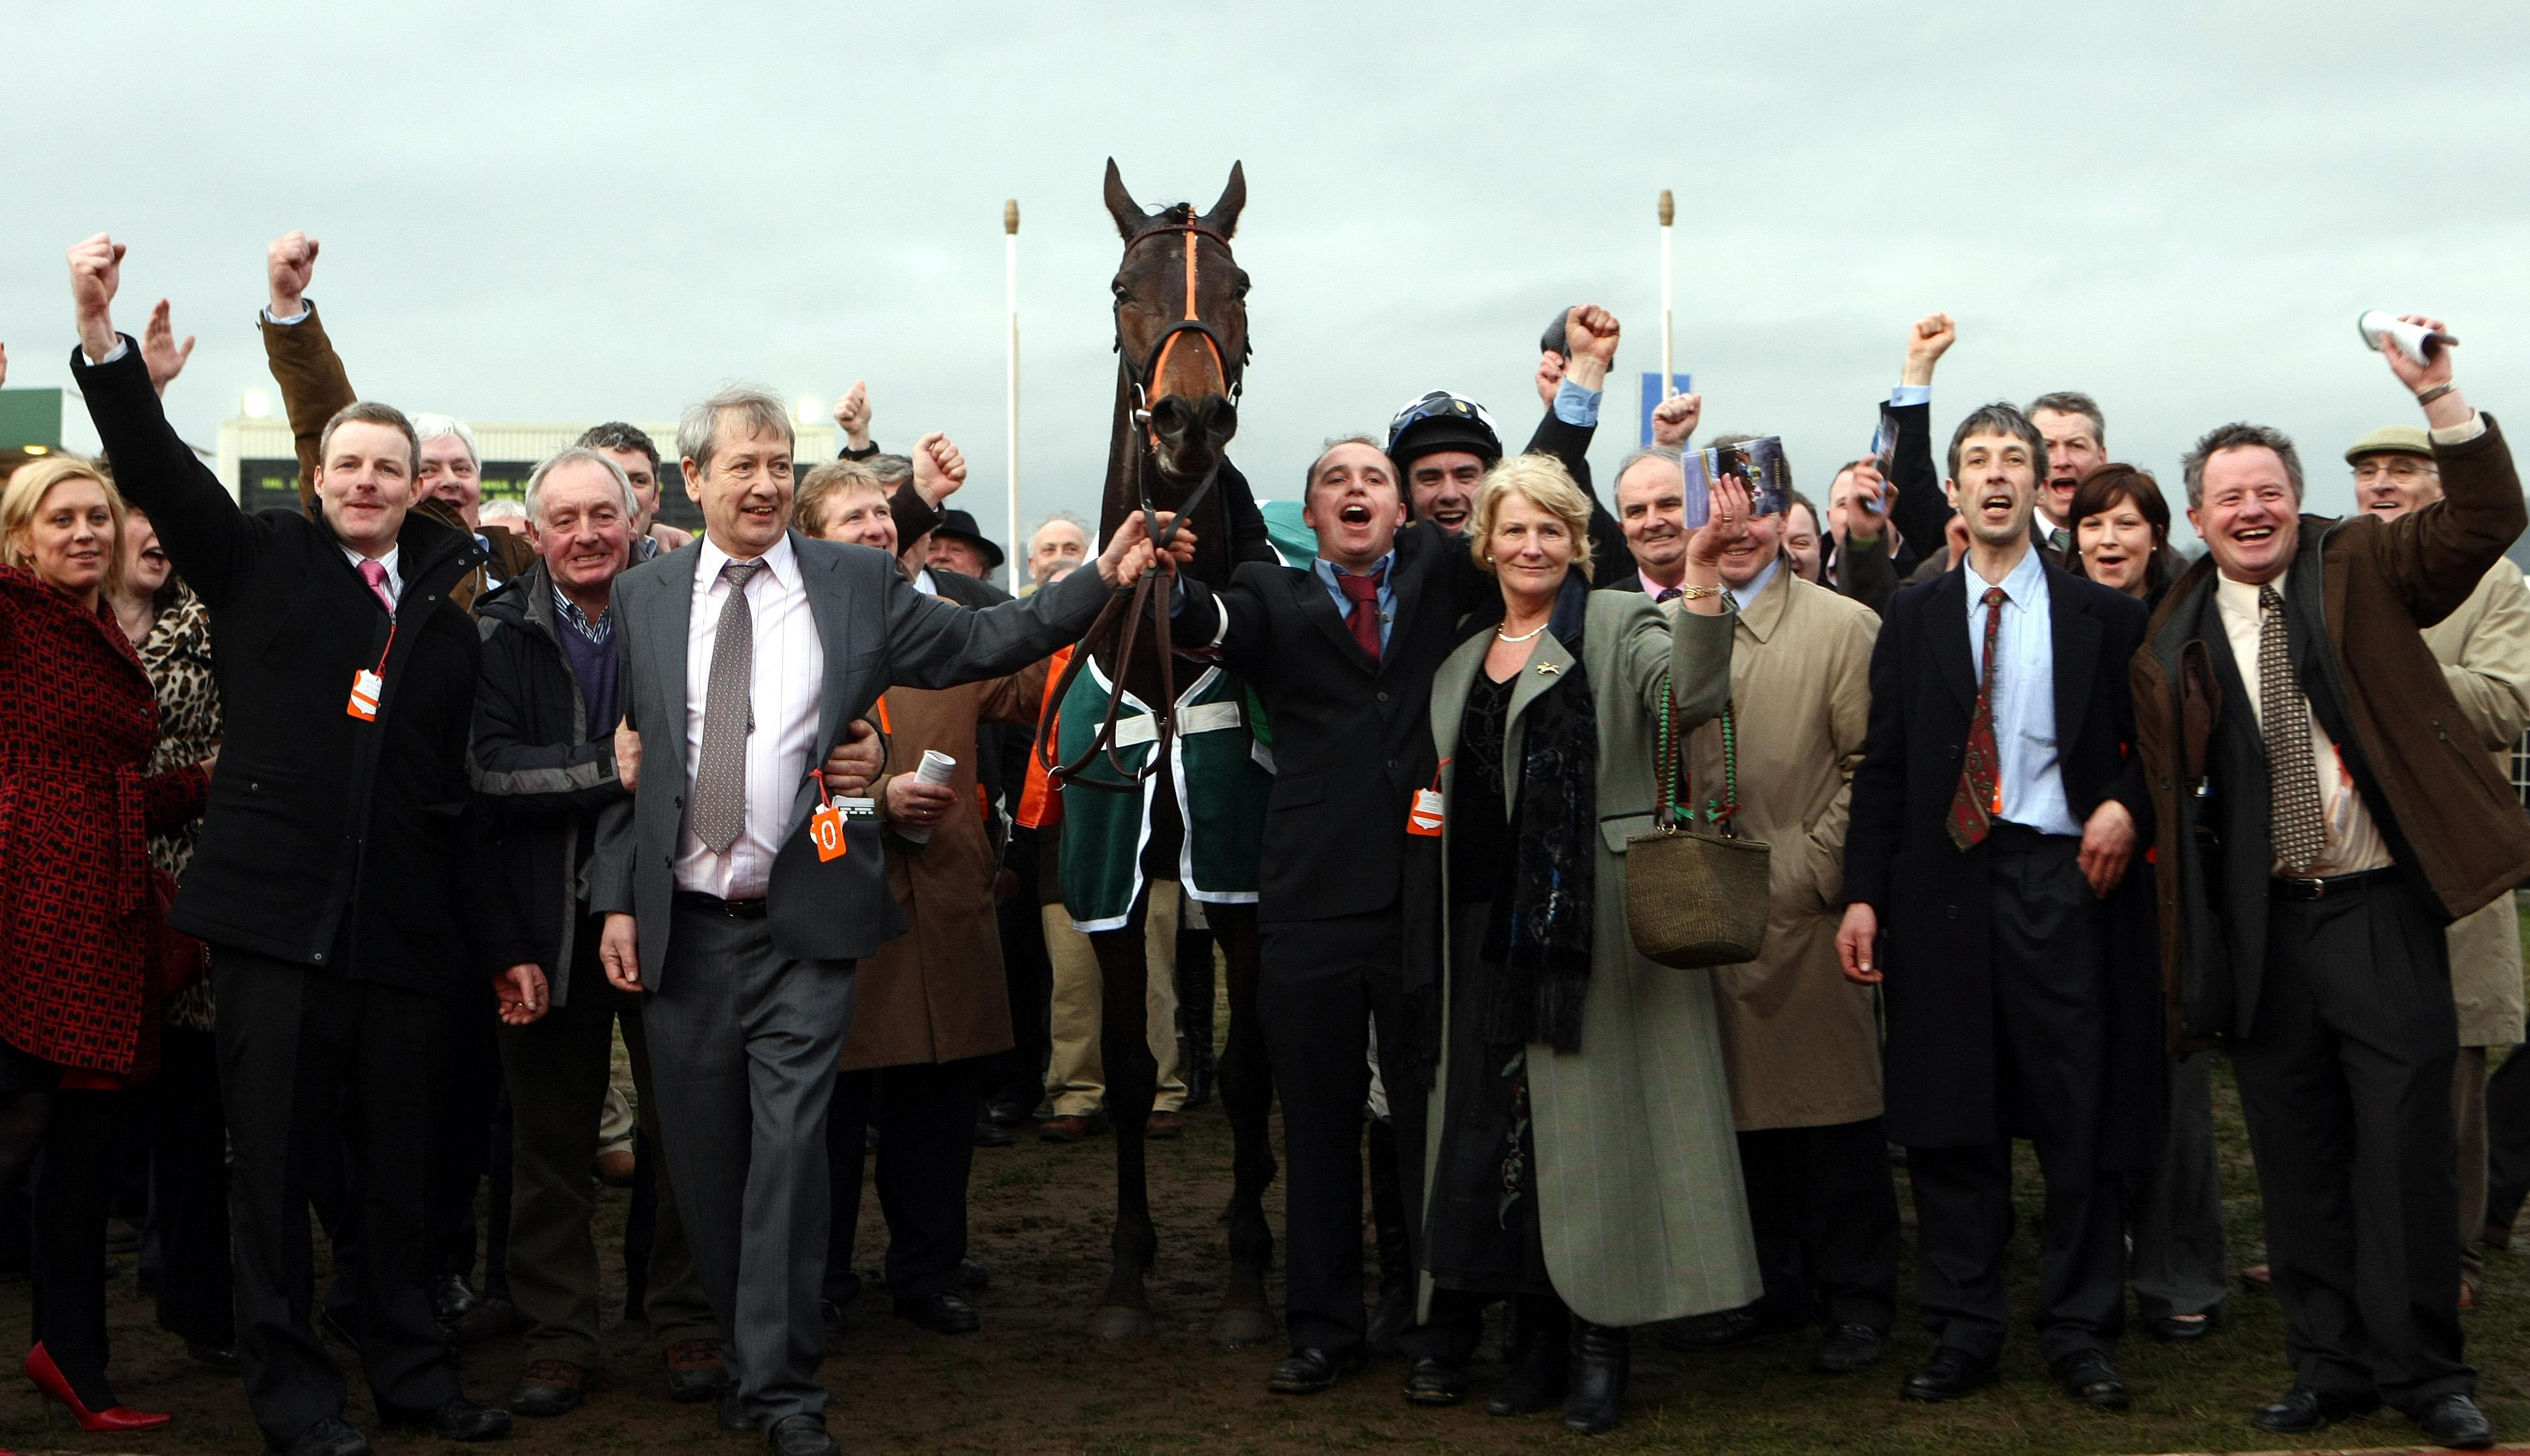 Connections of Dunguib celebrate after winning the Champion Bumper at Cheltenham in 2009